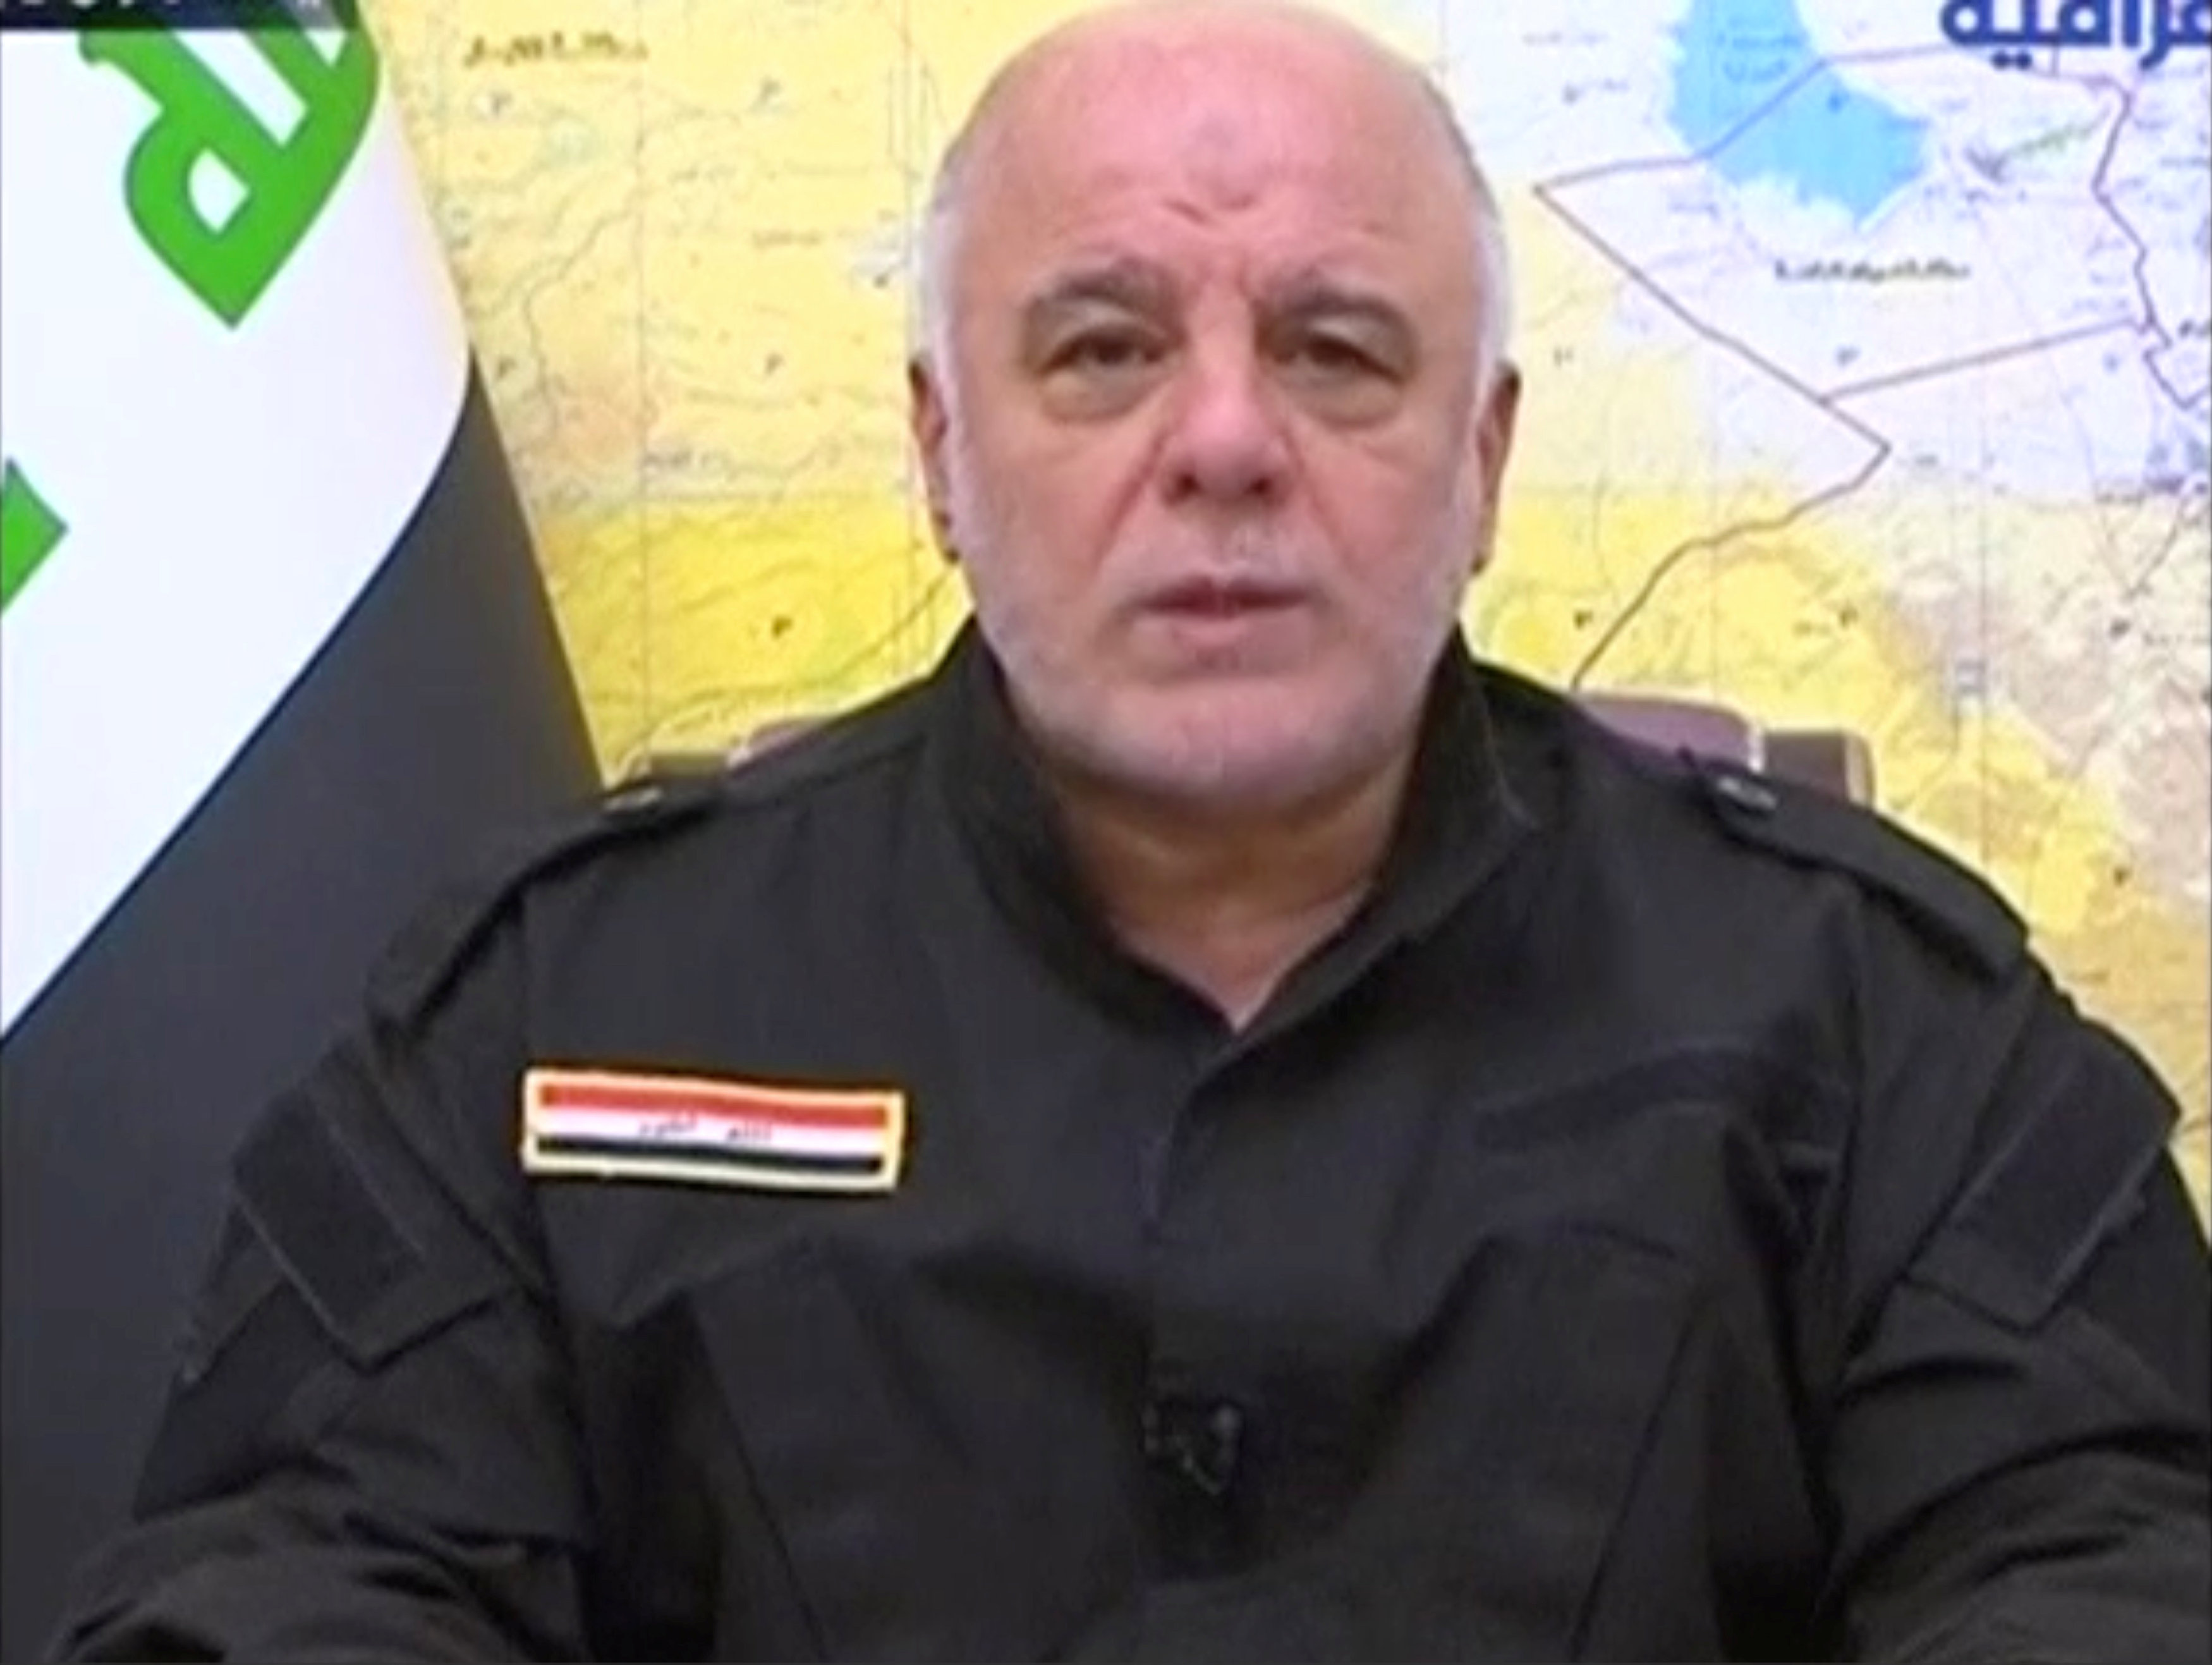 A still image taken from a video shows Iraqi Prime Minister Haider Al-Abadi speaking as he makes a statement on Tal Afar, in Baghdad, Iraq on August 20, 2017. (Al Iraqiya TV/ via REUTERS TV)